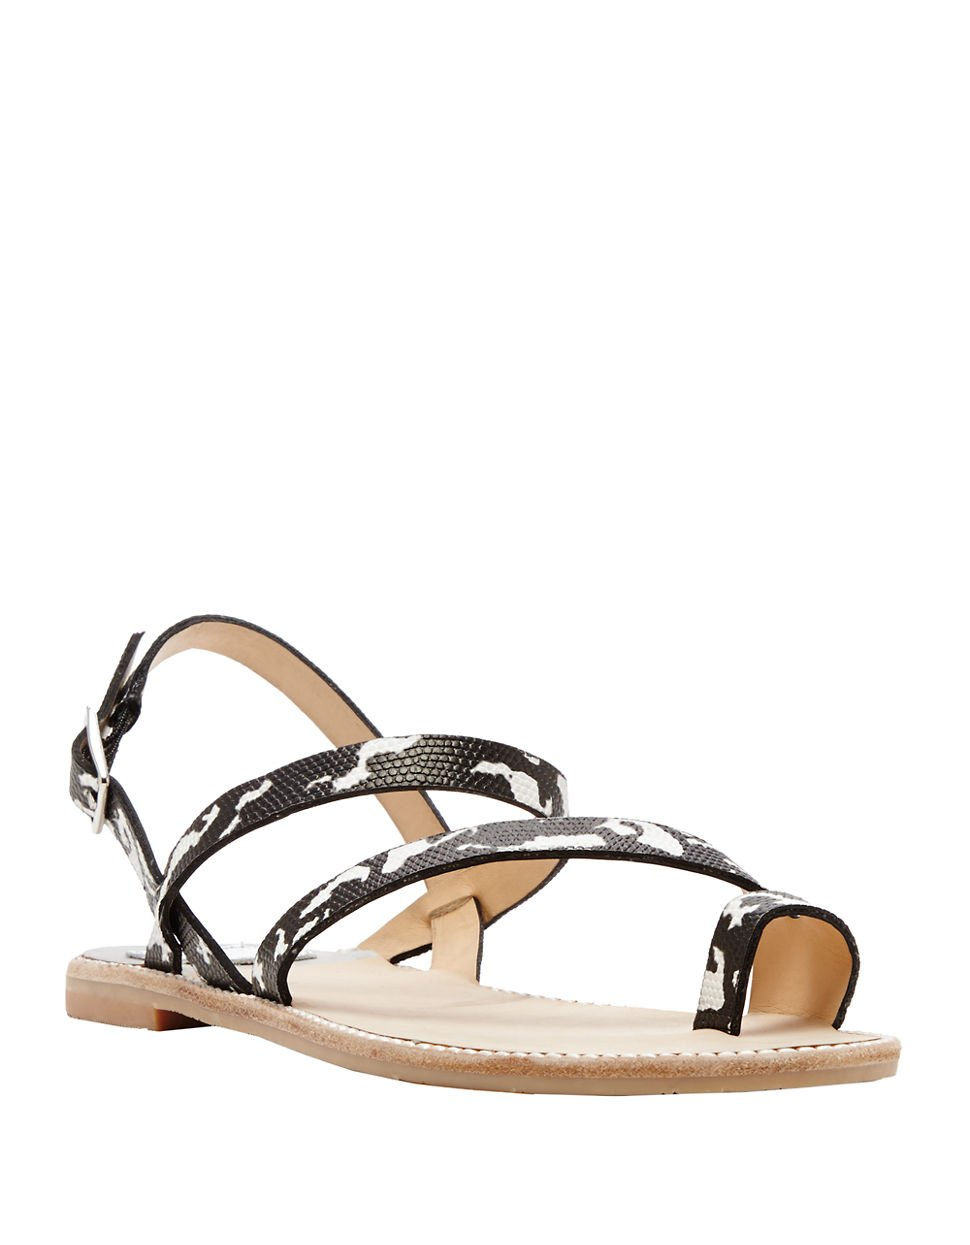 Lyst Dolce Vita Nelley Embossed Leather Sandals In Black